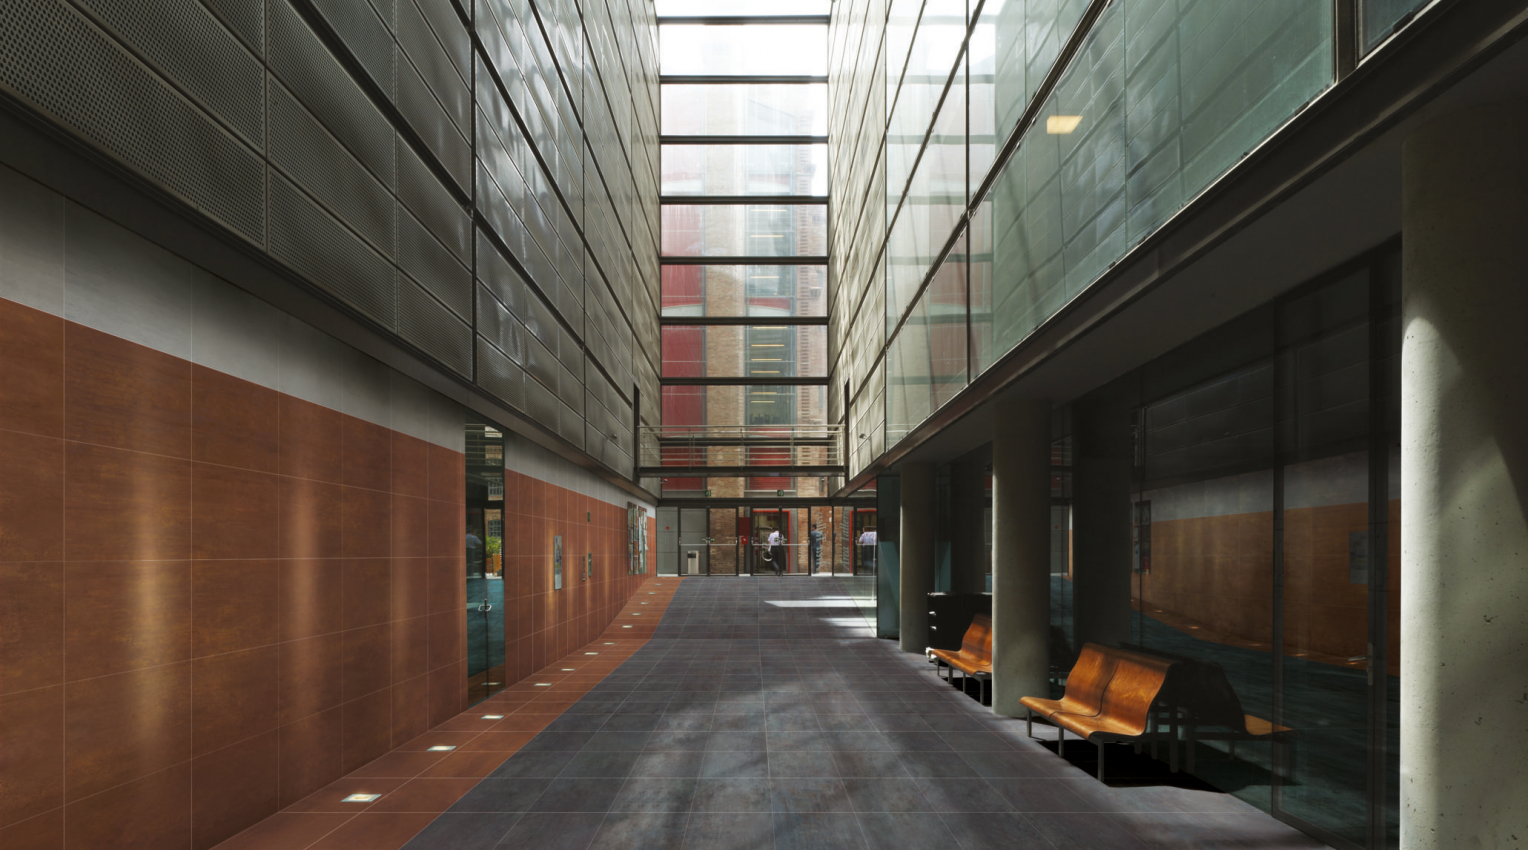 Corten and metal look floors and walls